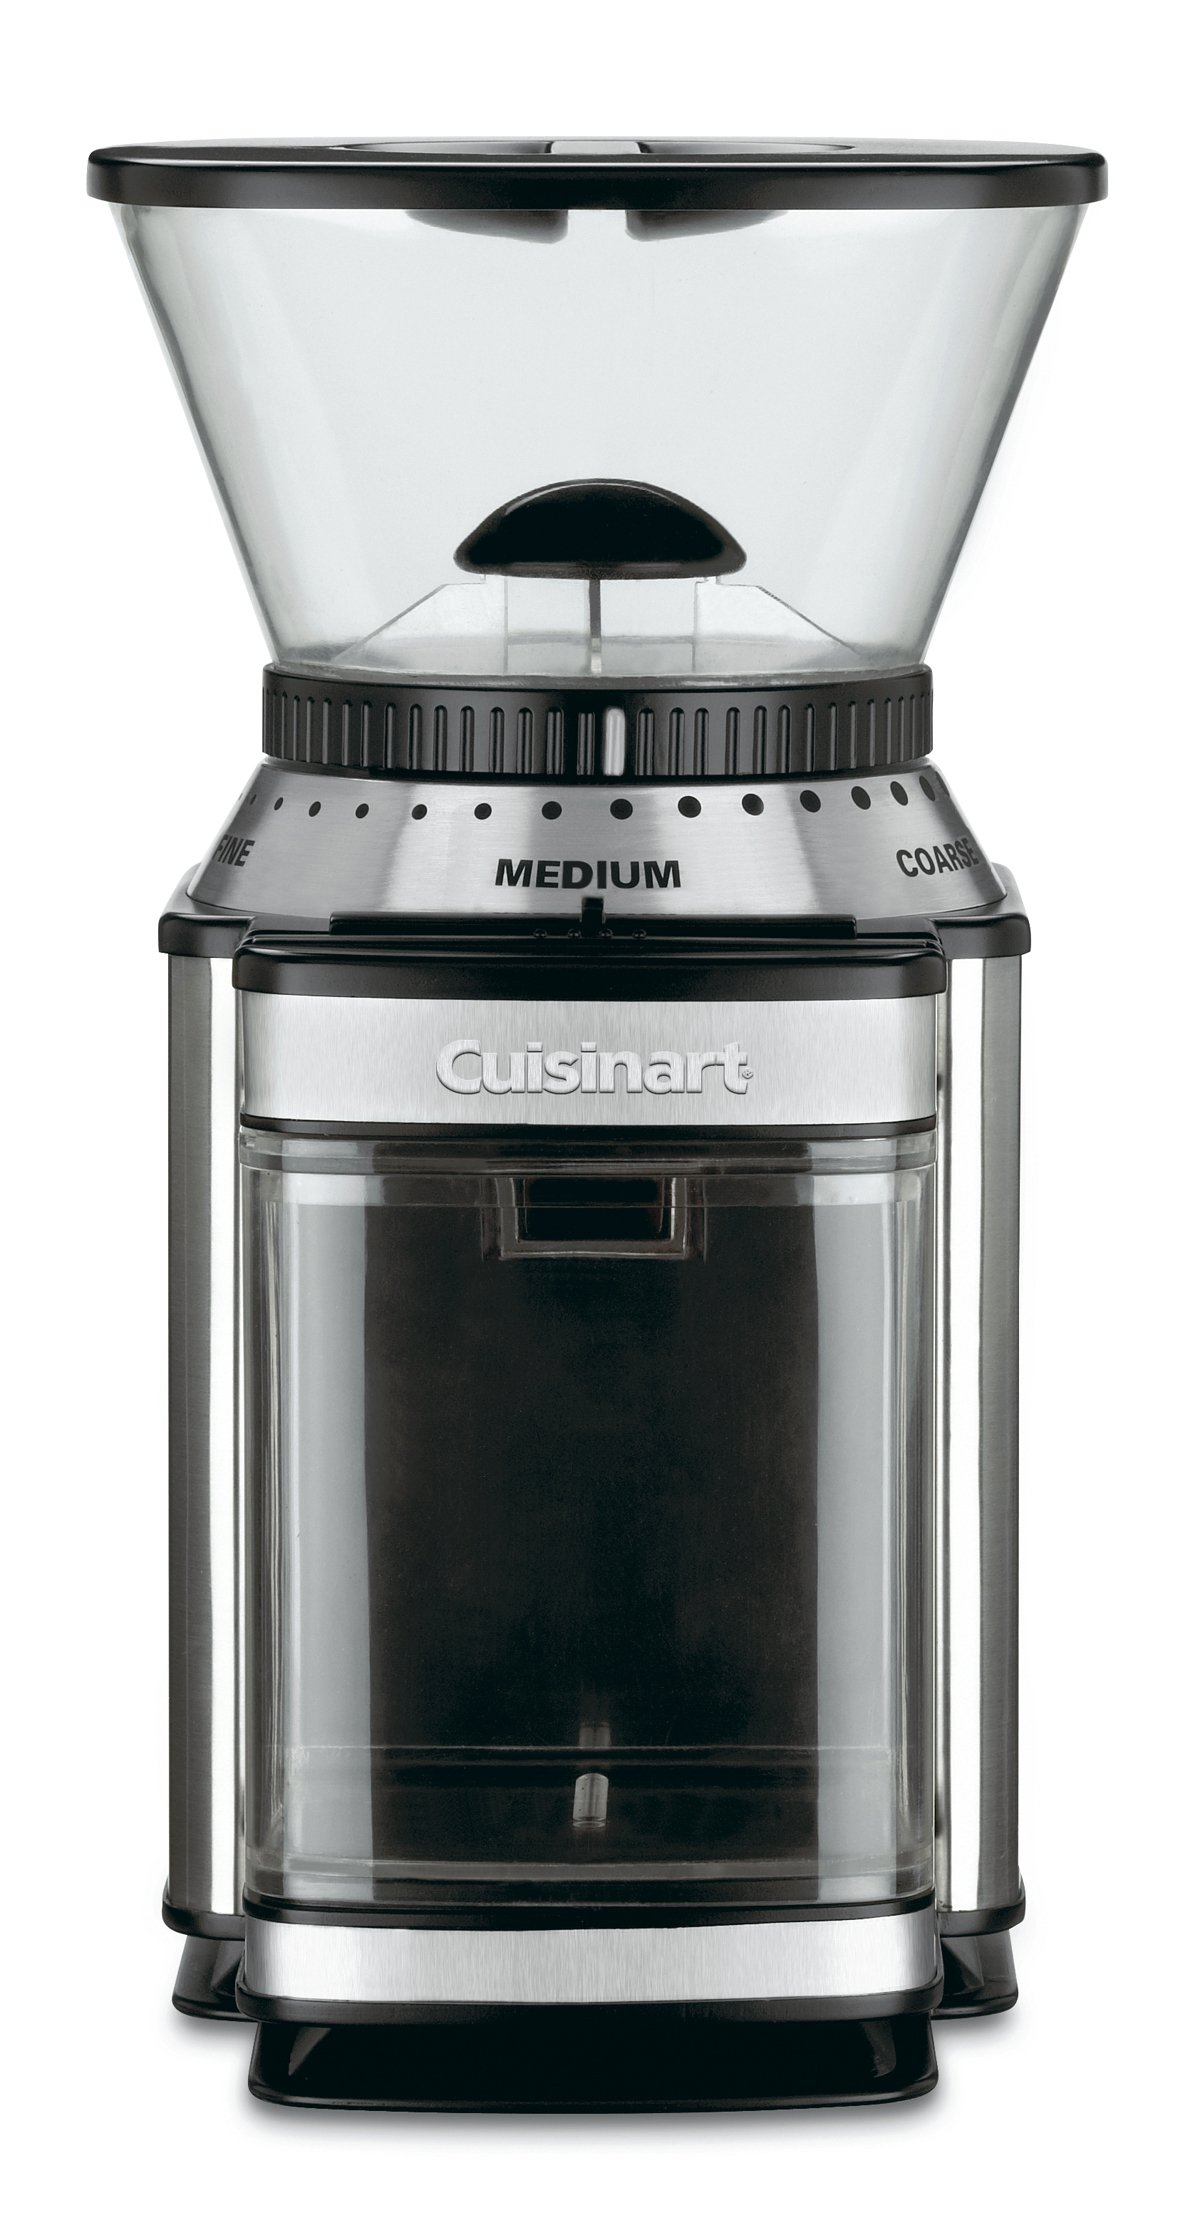 Cuisinart DBM-8 Supreme Grind Automatic Burr Mill, Stainless Steel